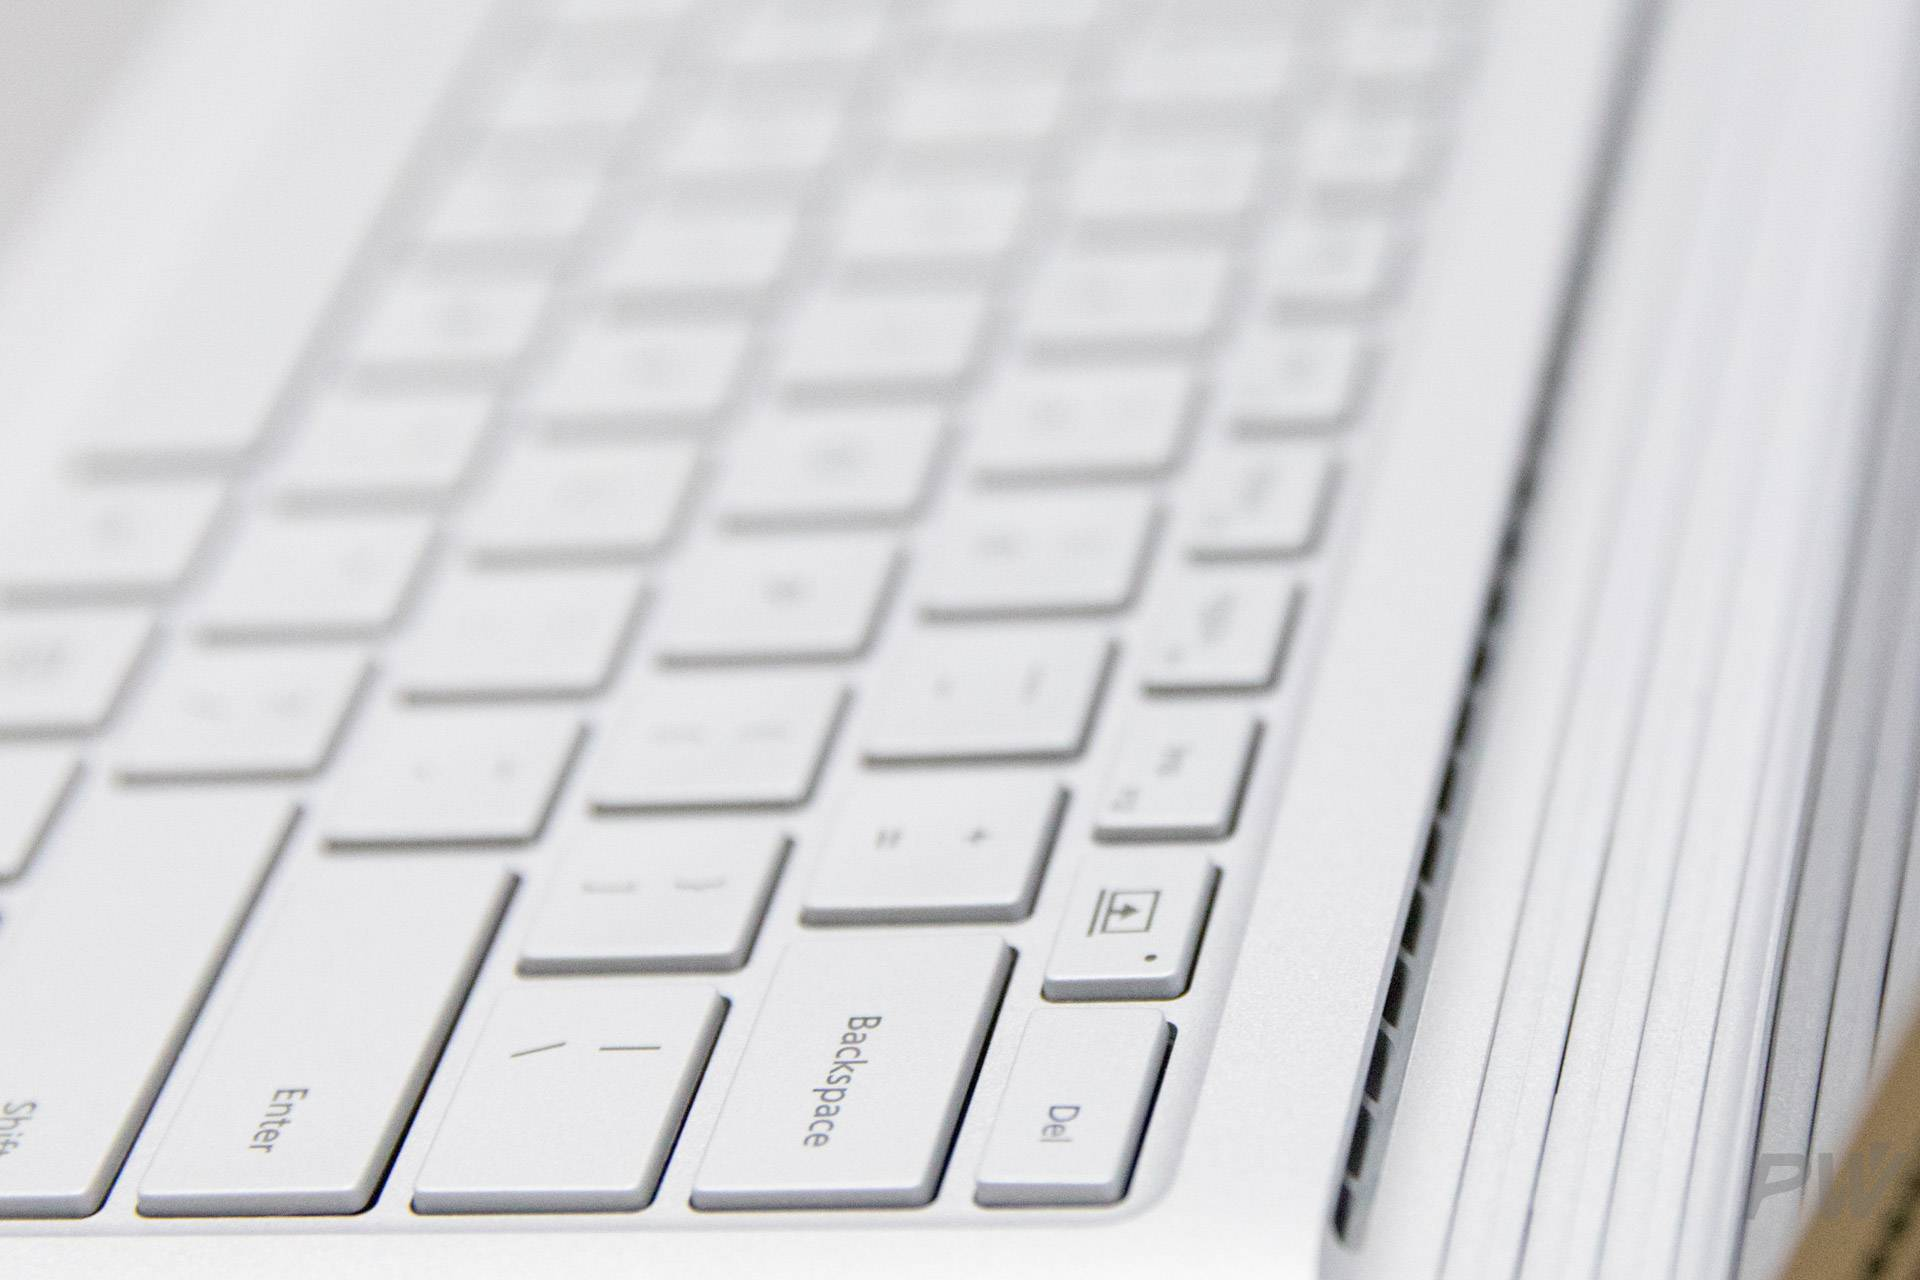 Microsoft Surface Book 2017 Photo by Hao Ying-8